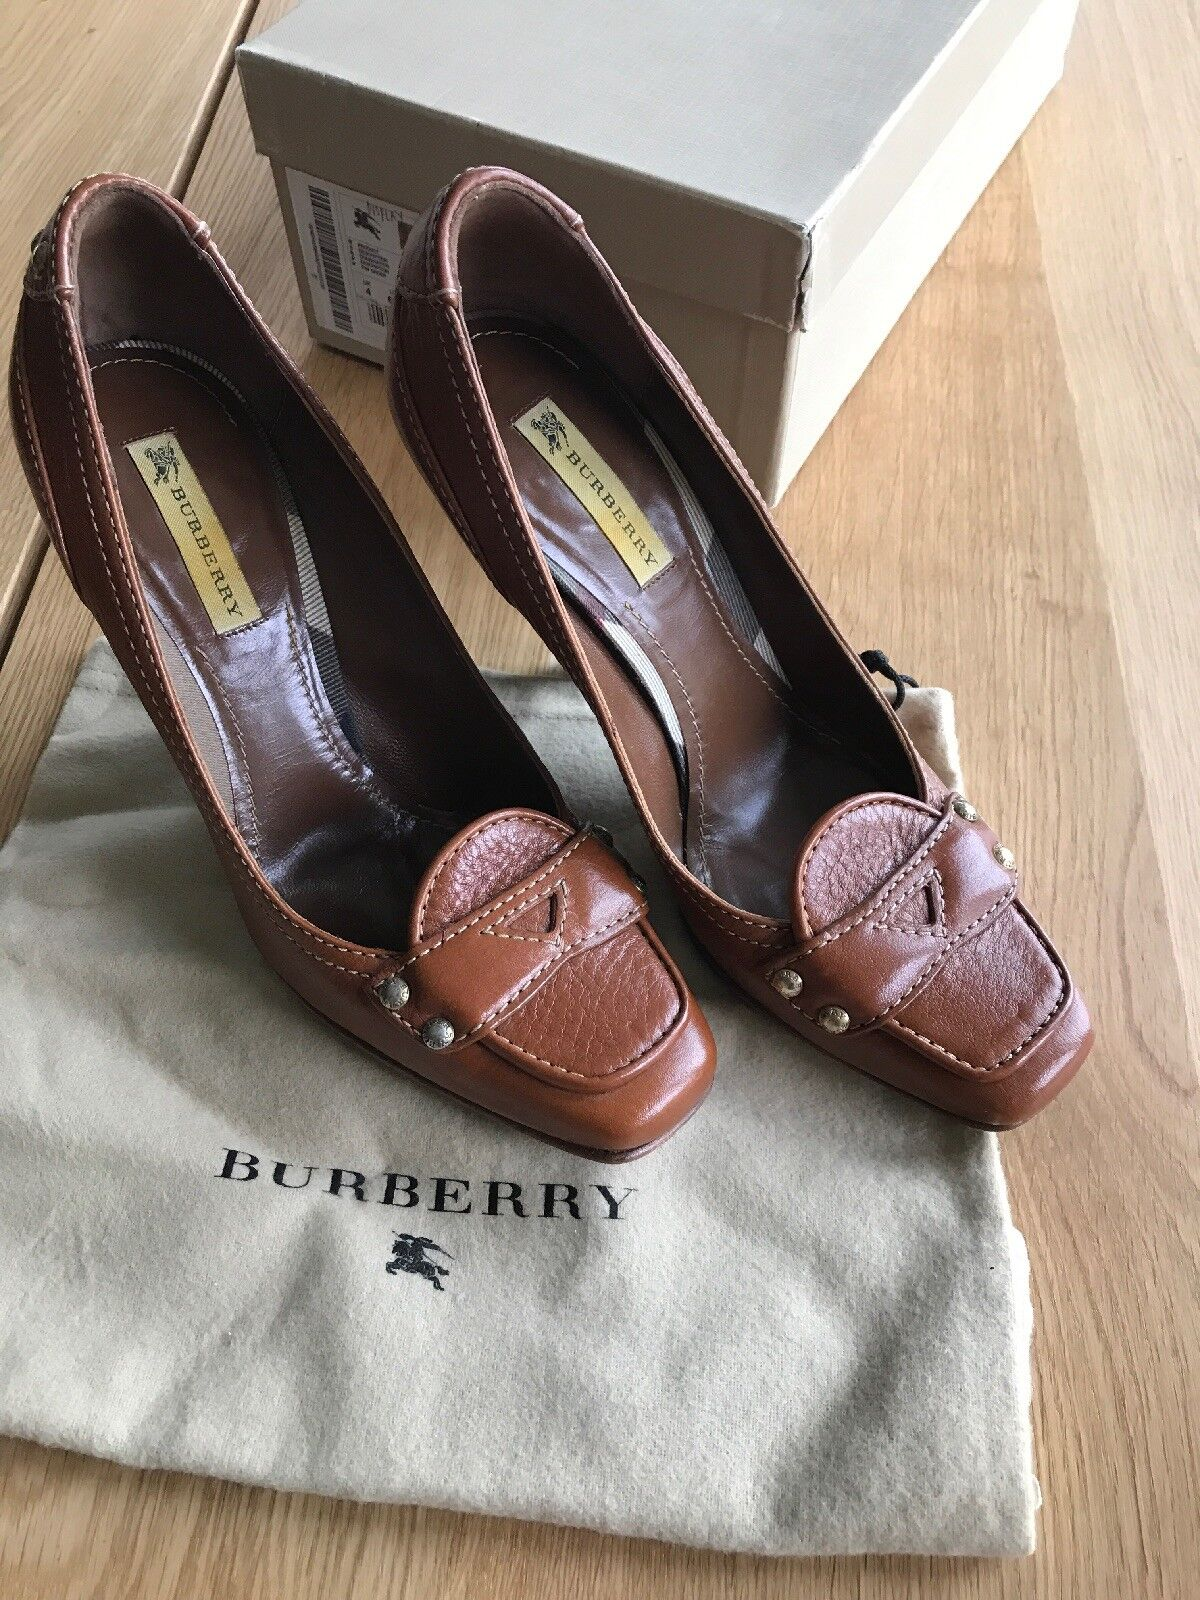 Burberry Leather High Heel Shows 6.5 37 Saddle Brown